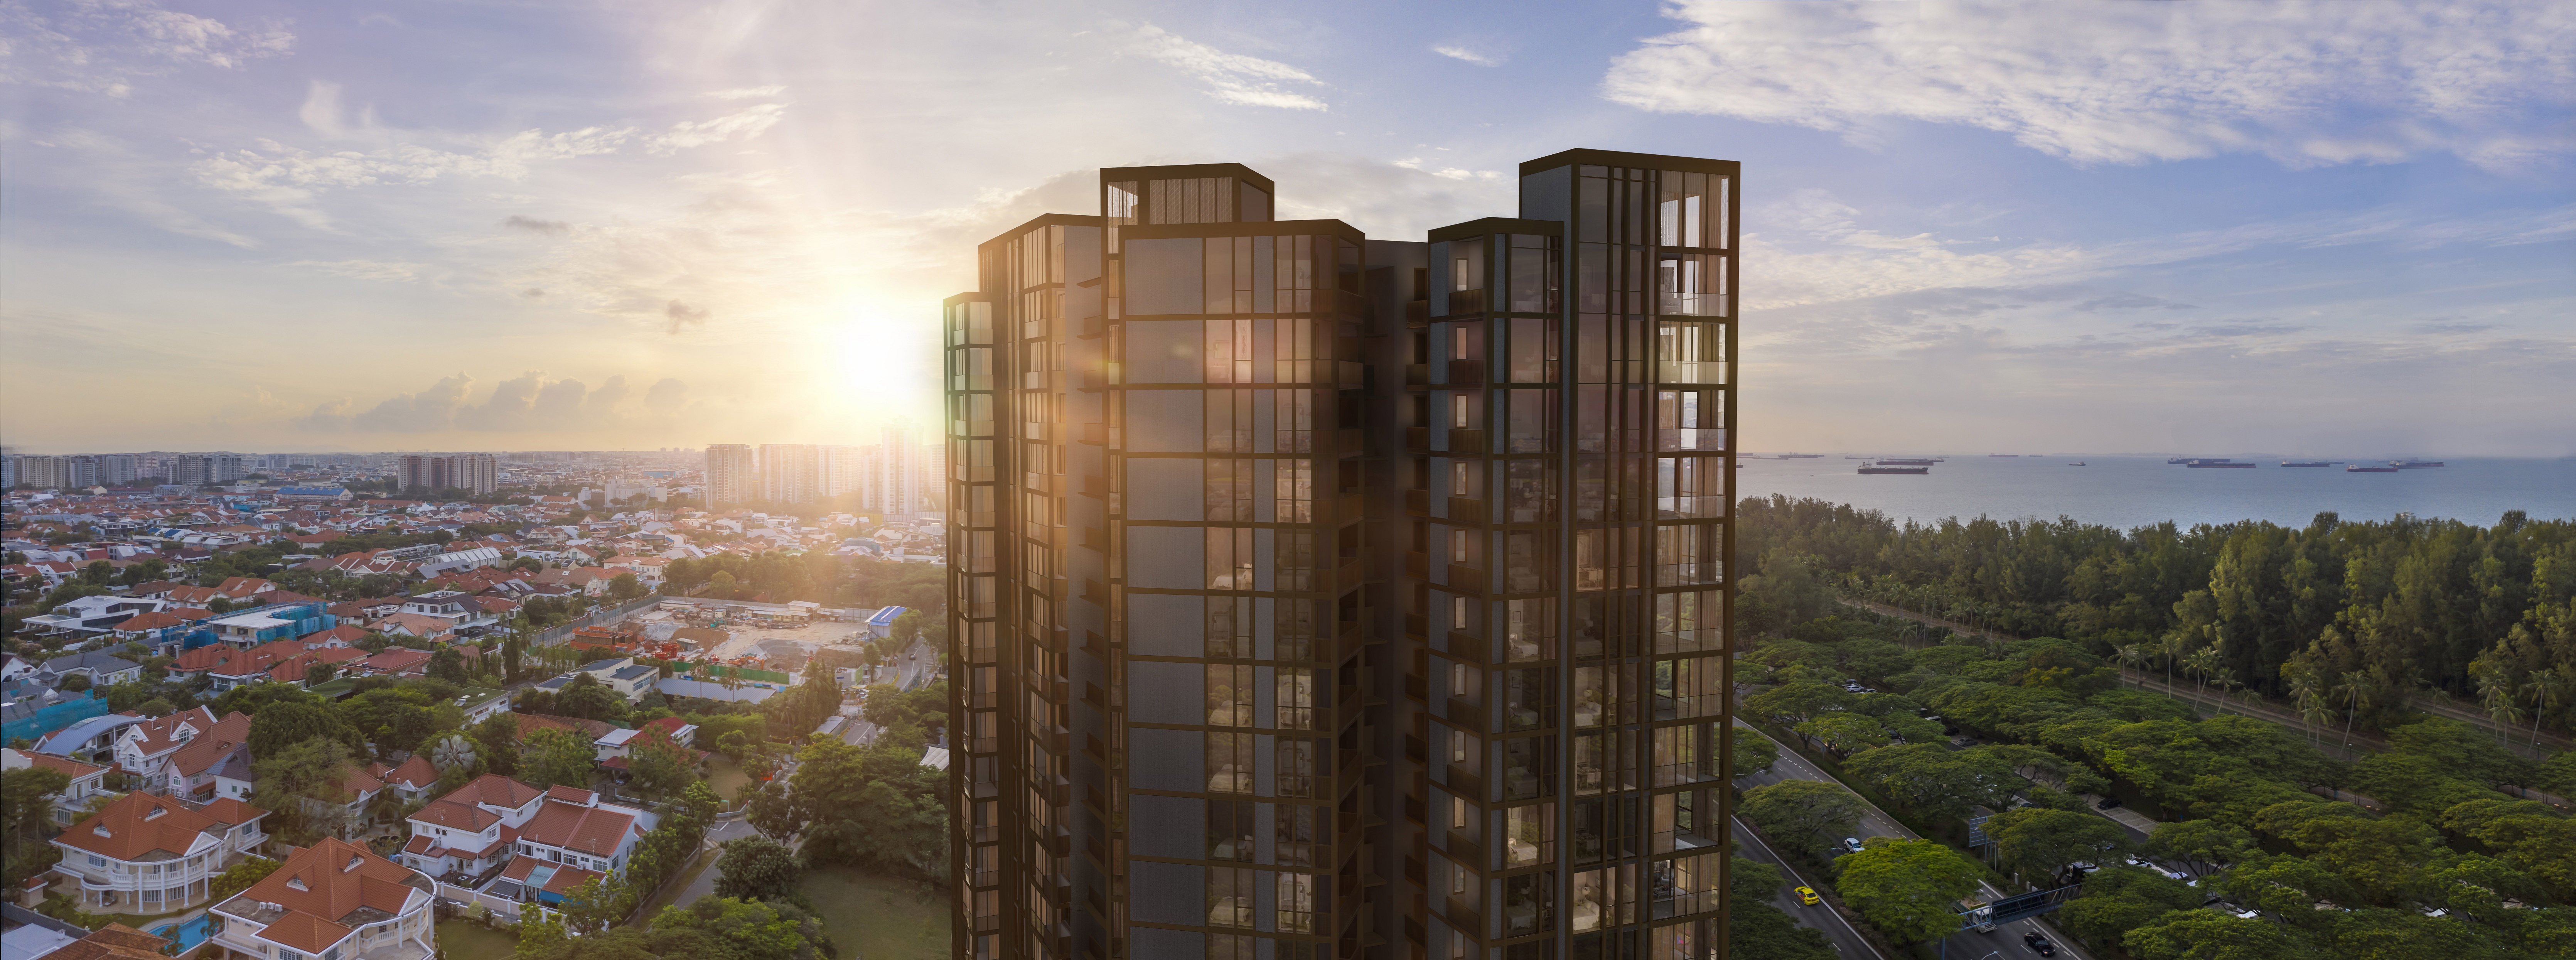 MEYER MANSION - The freehold Meyer Mansion comprises 200 units in a 25-storey residential tower (Credit: GuocoLand)